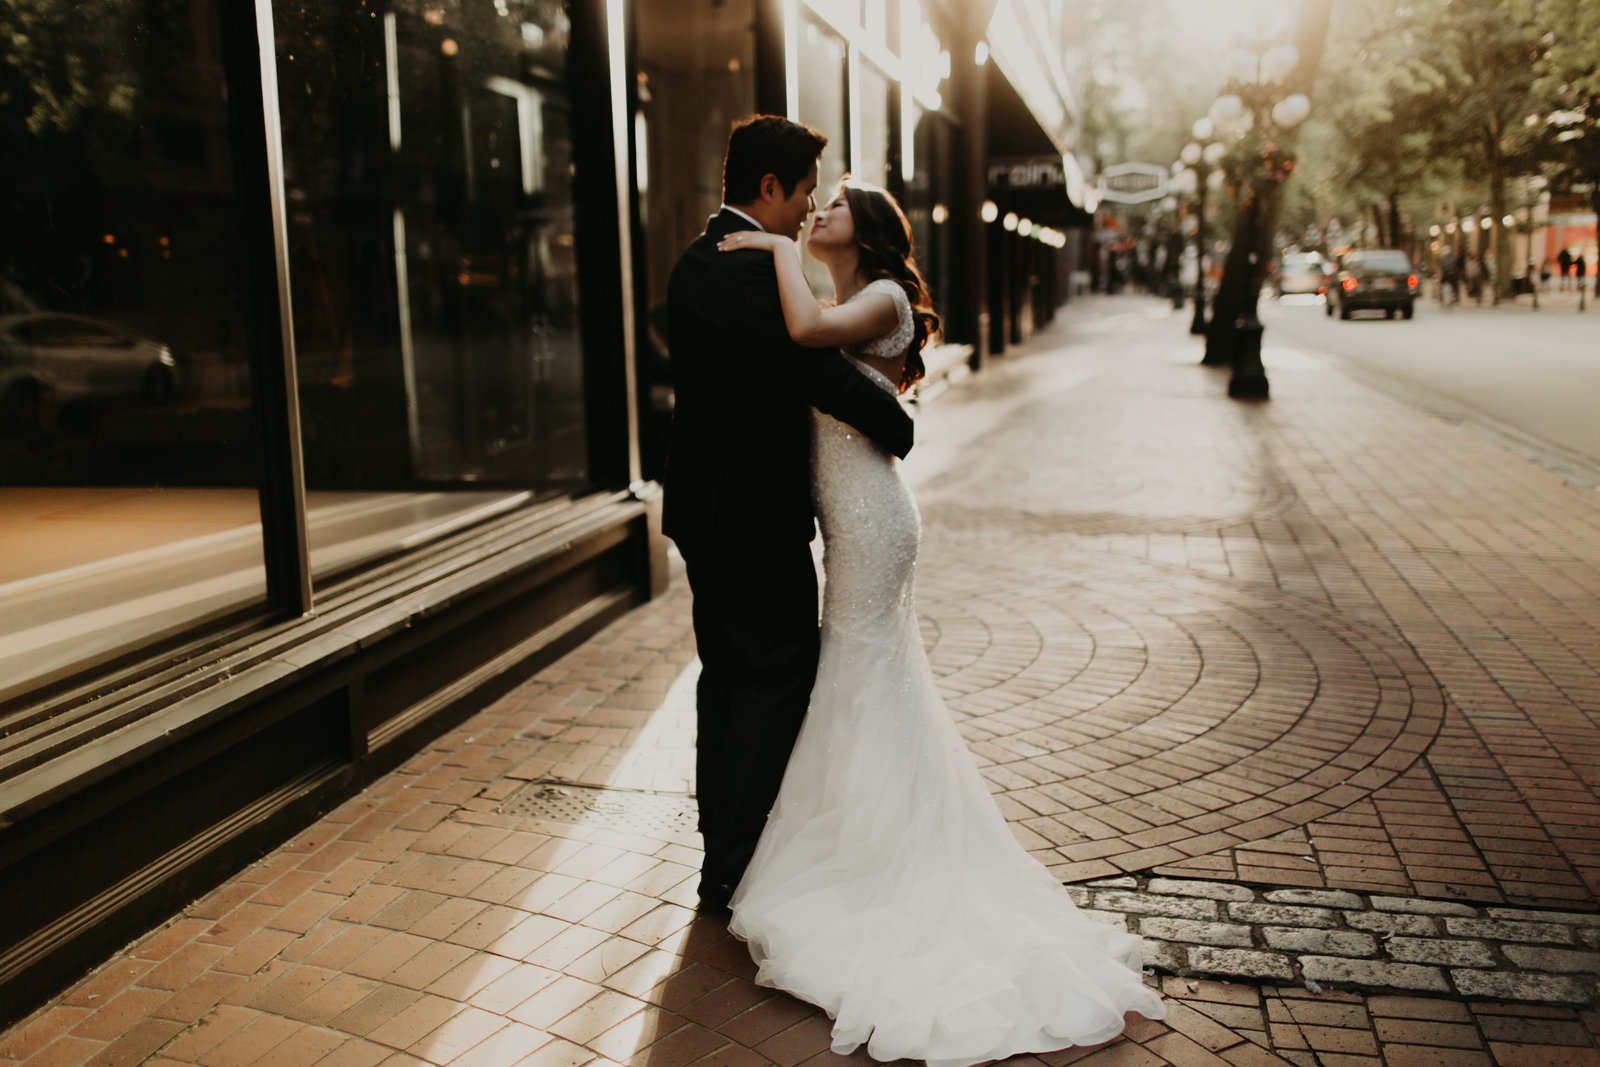 GASTOWN-WEDDING-MEGHAN-HEMSTRA-PHOTOGRAPHY-4